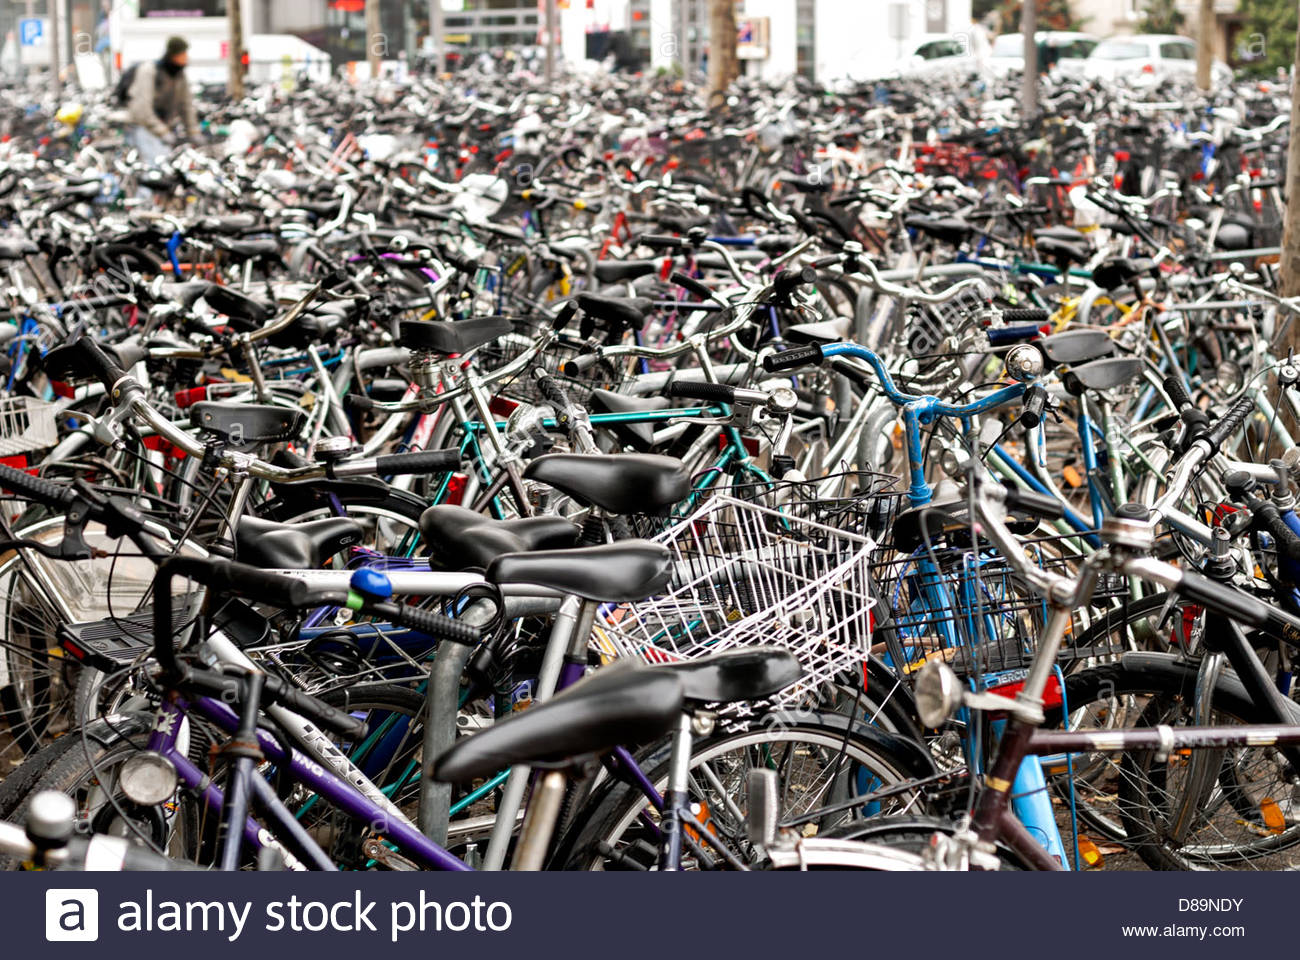 hundreds-of-bicycles-at-a-train-station-in-gttingen-gottingen-germany-D89NDY.jpg